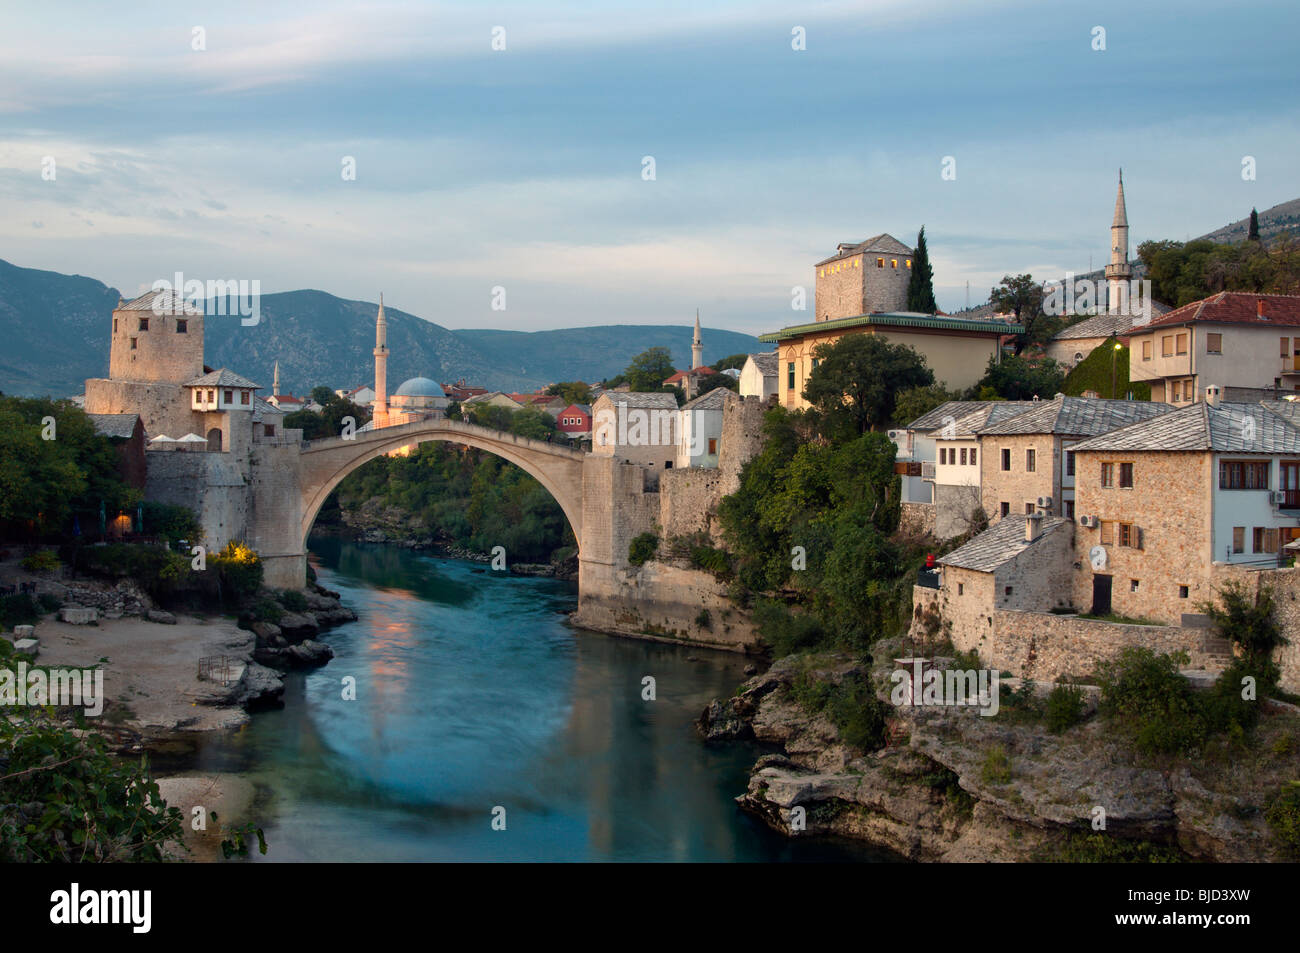 Historic Old Town and Stone Bridge of Mostar and Neretva River  in Bosnia Herzegovina - Stock Image